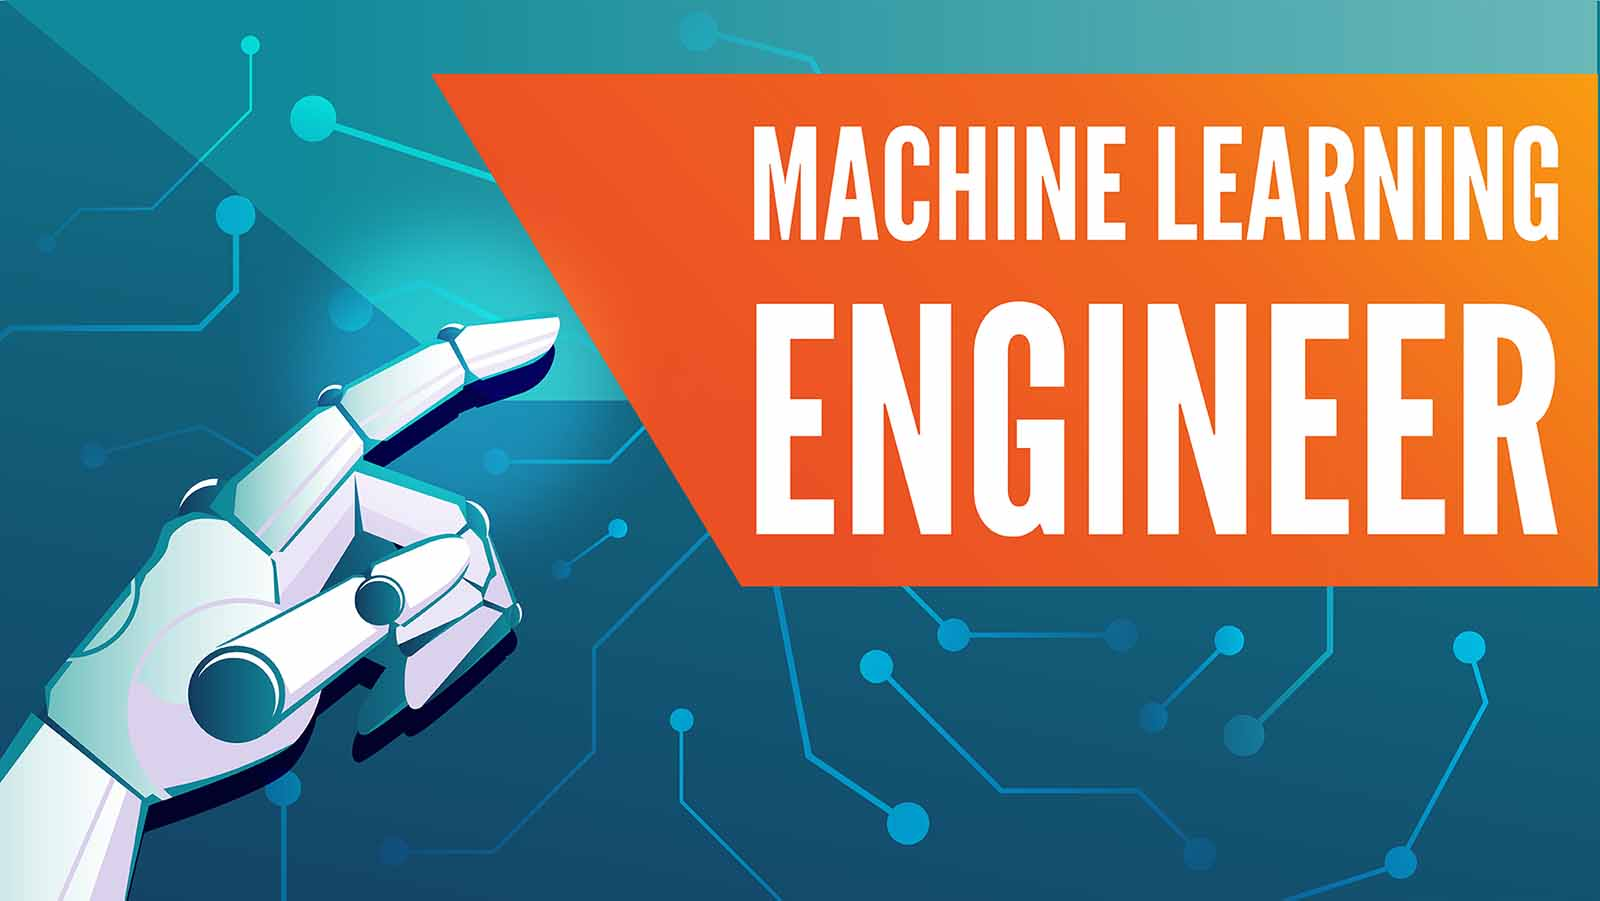 How to Become a Machine Learning Engineer?